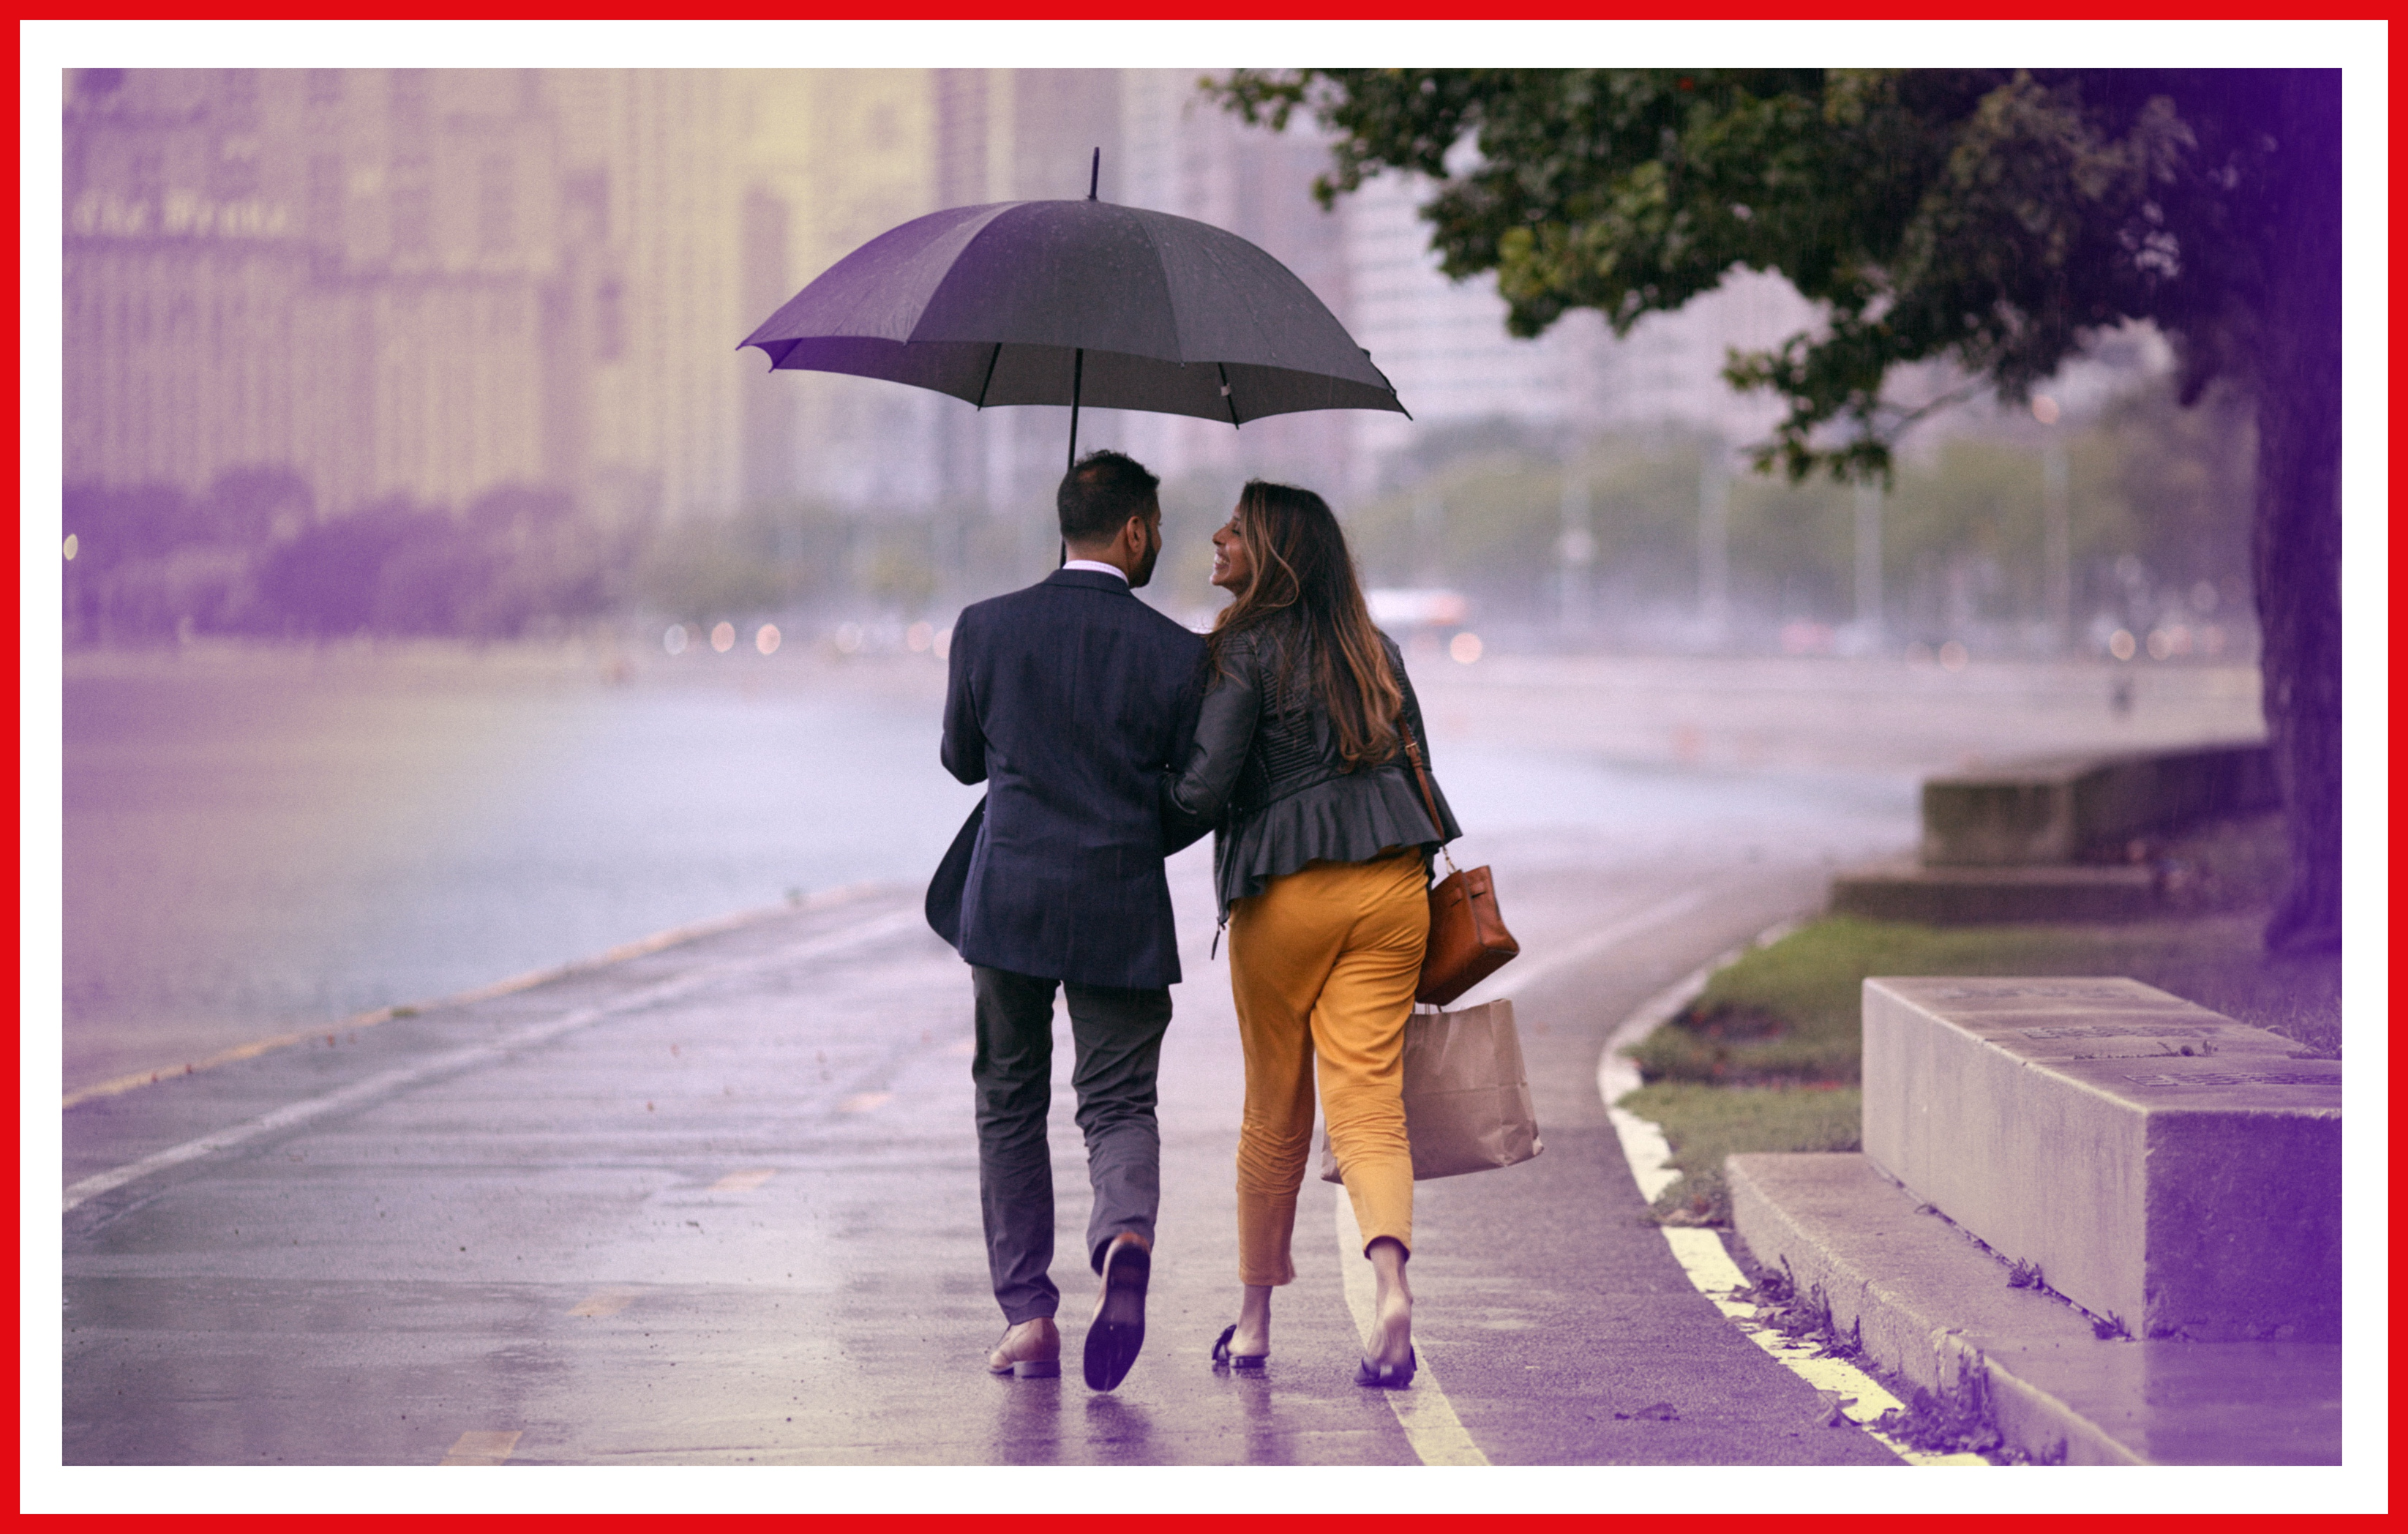 The couple walk down a rainy street.